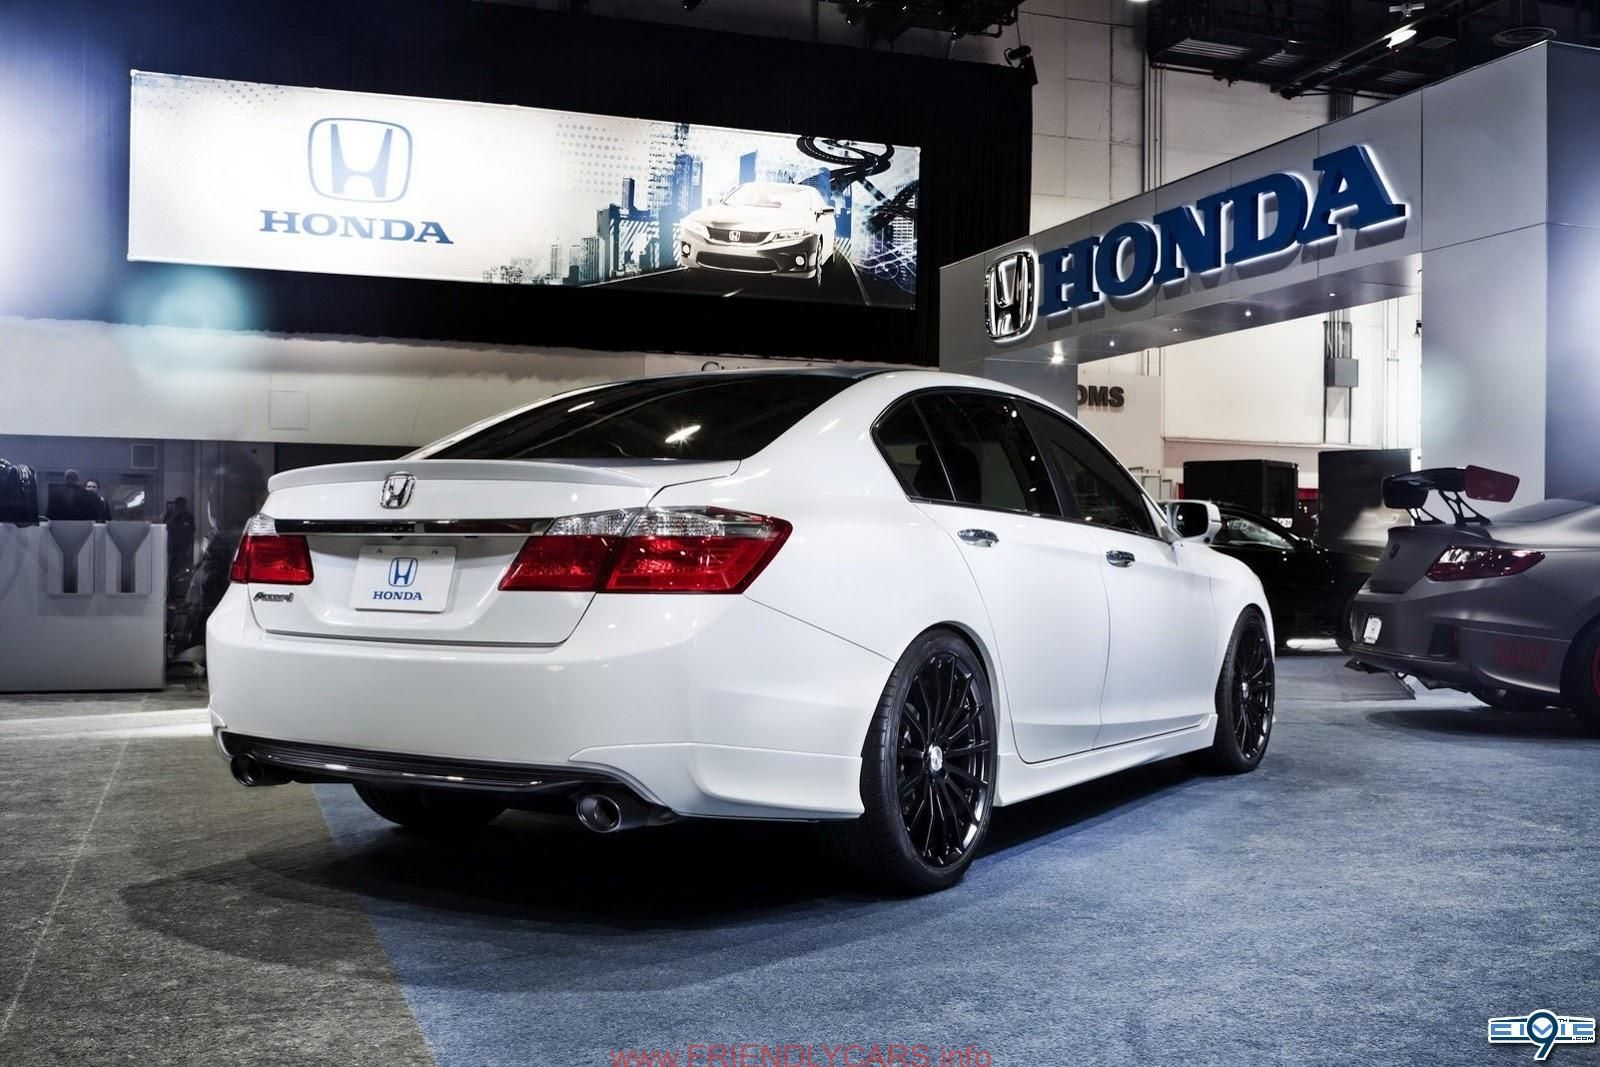 All New Accord >> nice honda accord coupe white with black rims car images hd 2013 Honda Accord Manual Interior Hd ...